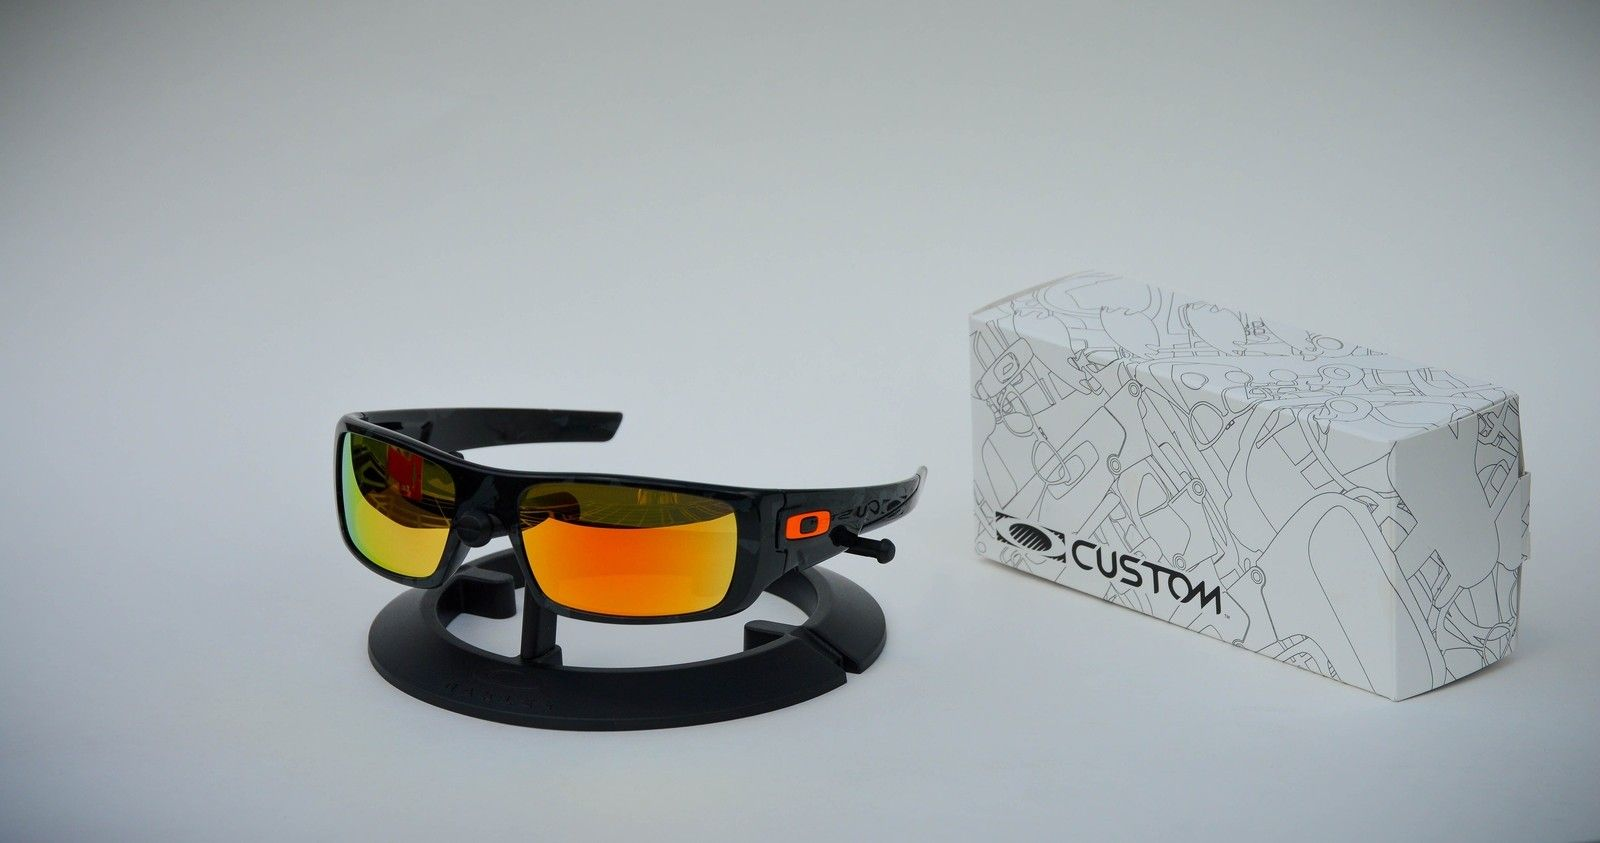 Custom Crankshaft Shadow Camo Fire irid/Orange Icons $115 - 1hkIzp3.jpg